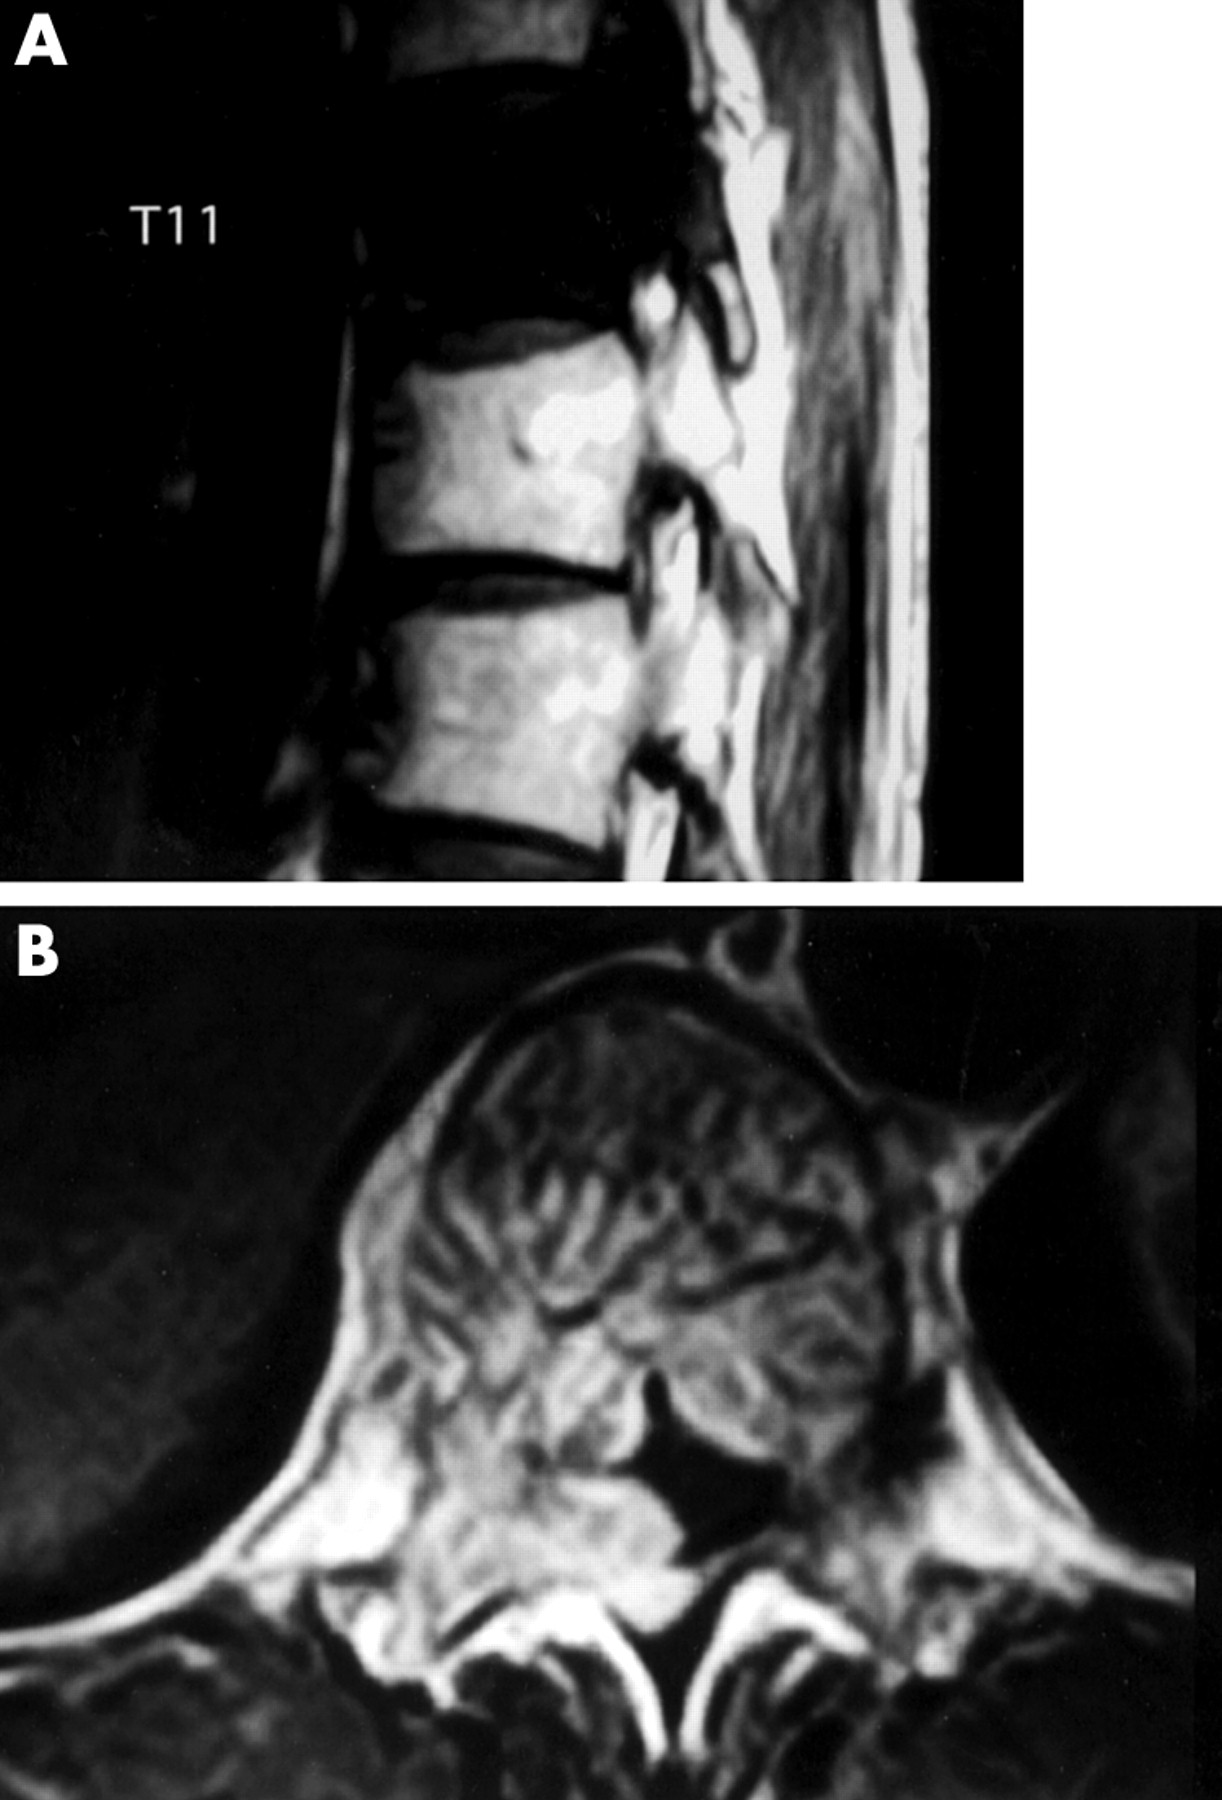 Spinal Reconstruction For Symptomatic Thoracic Haemangioma Using A